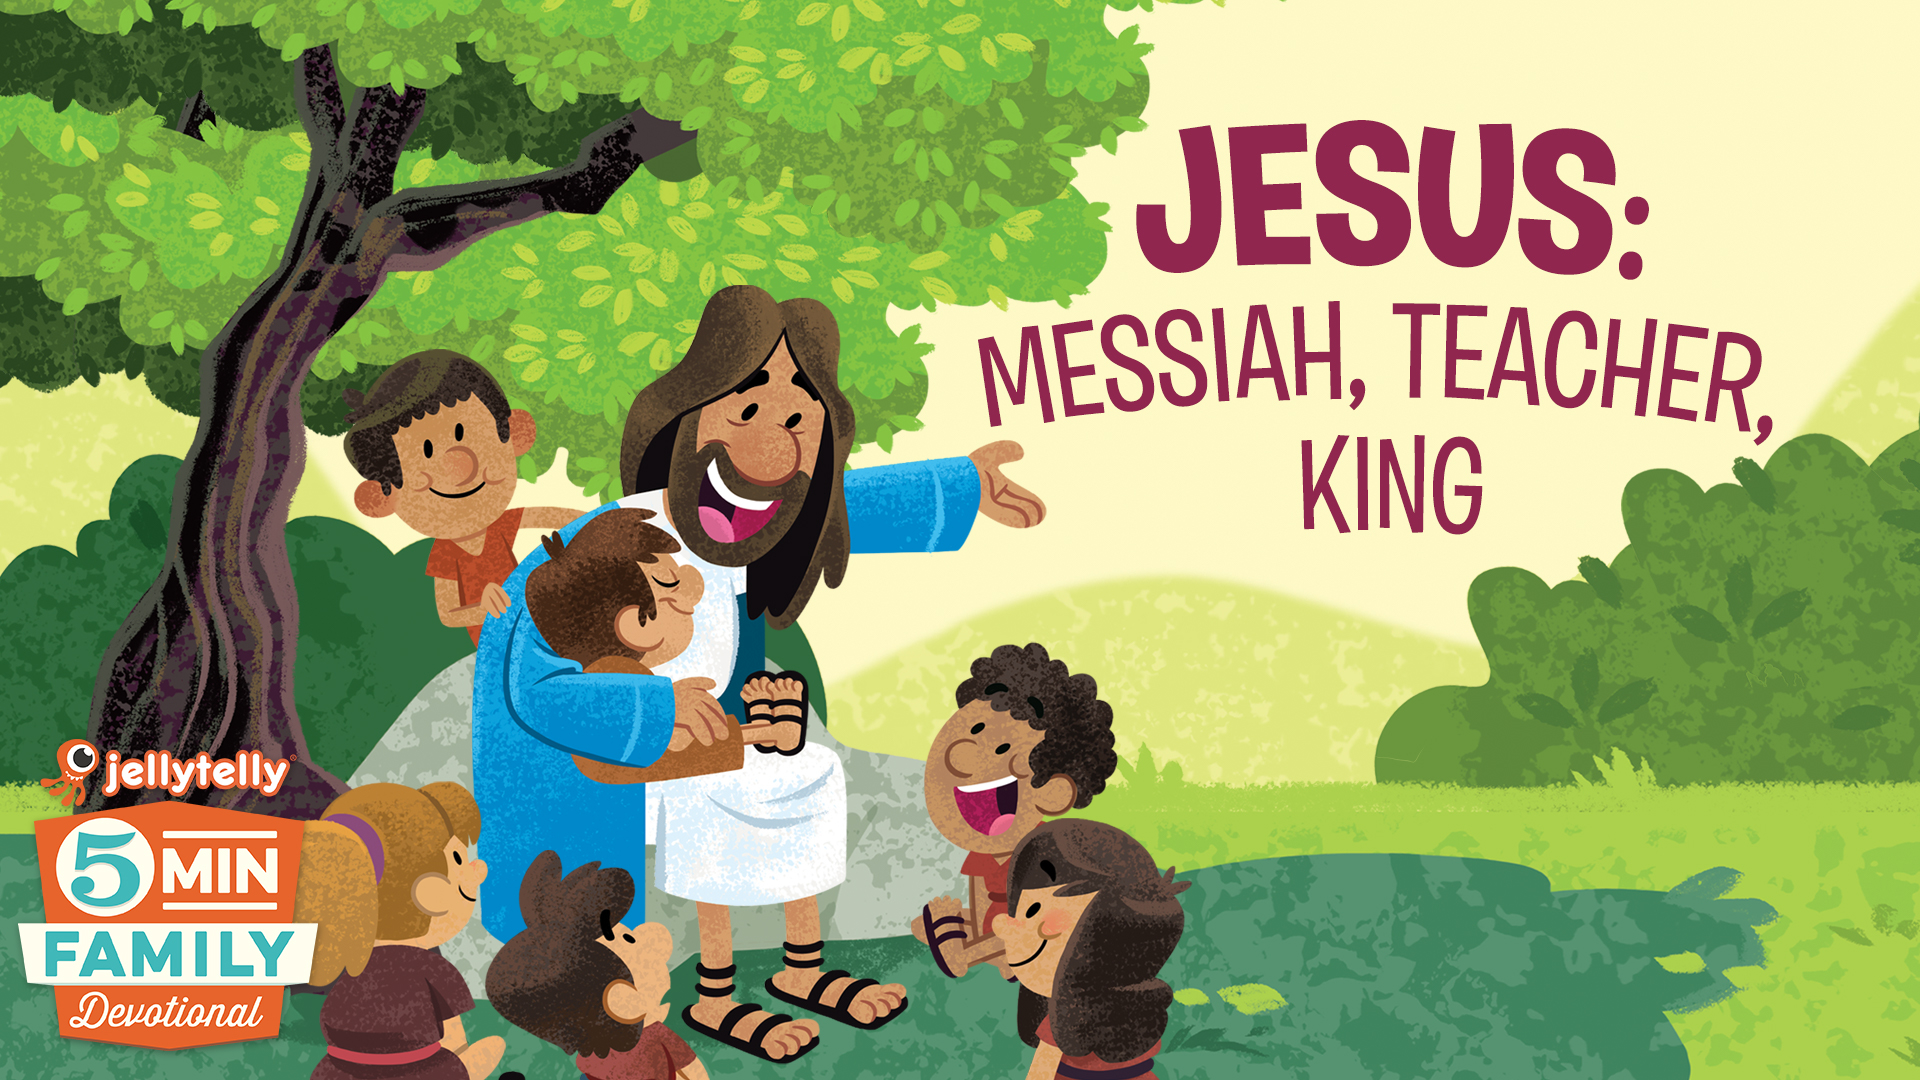 jellytelly u2013 jesus messiah teacher king 5 minute family